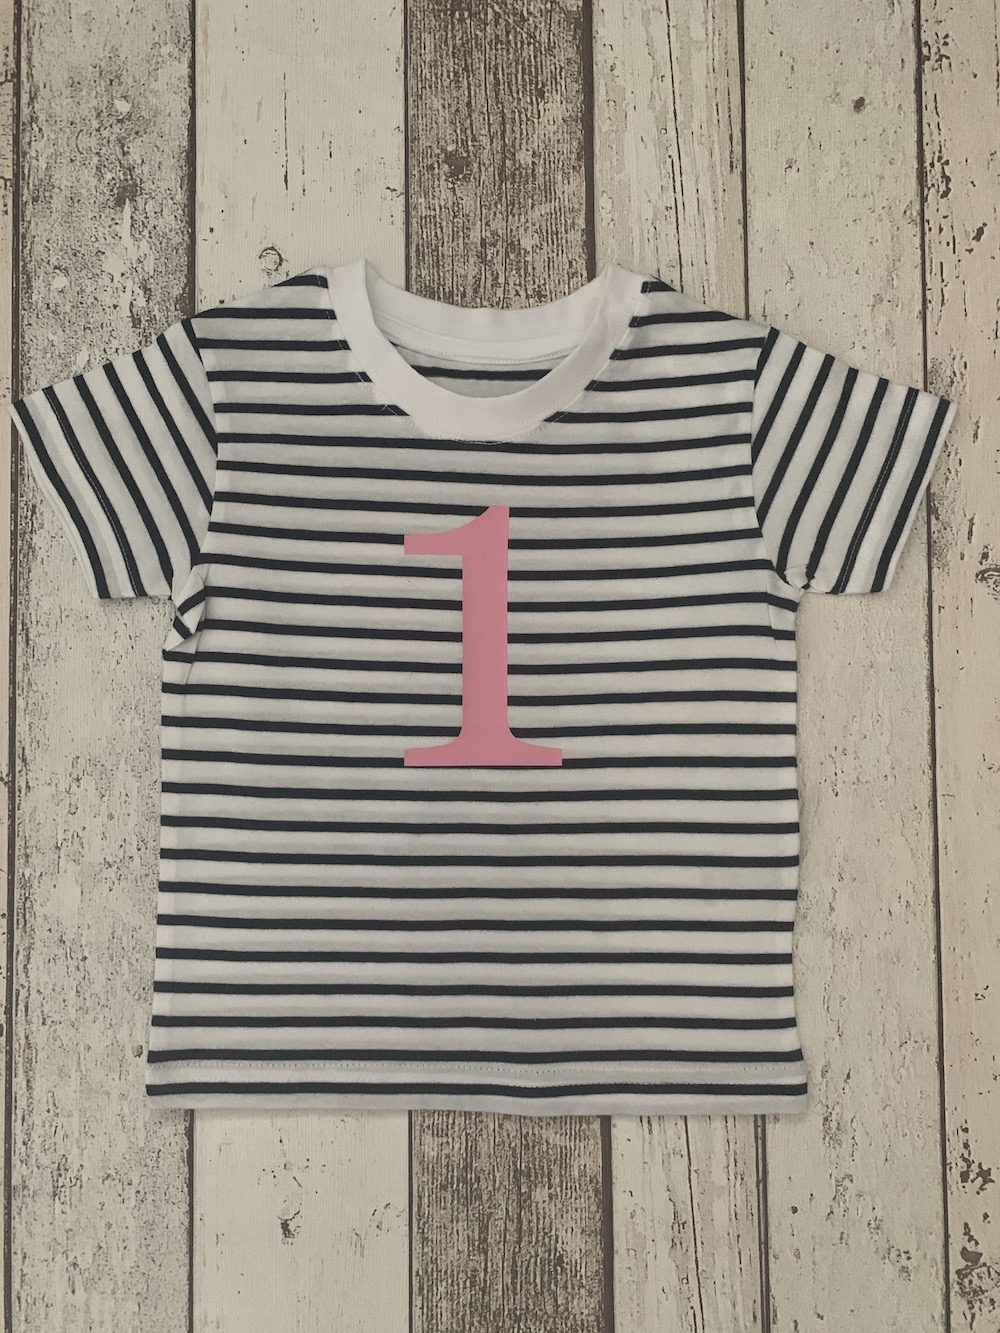 Number 1 Stripe Birthday T-shirt